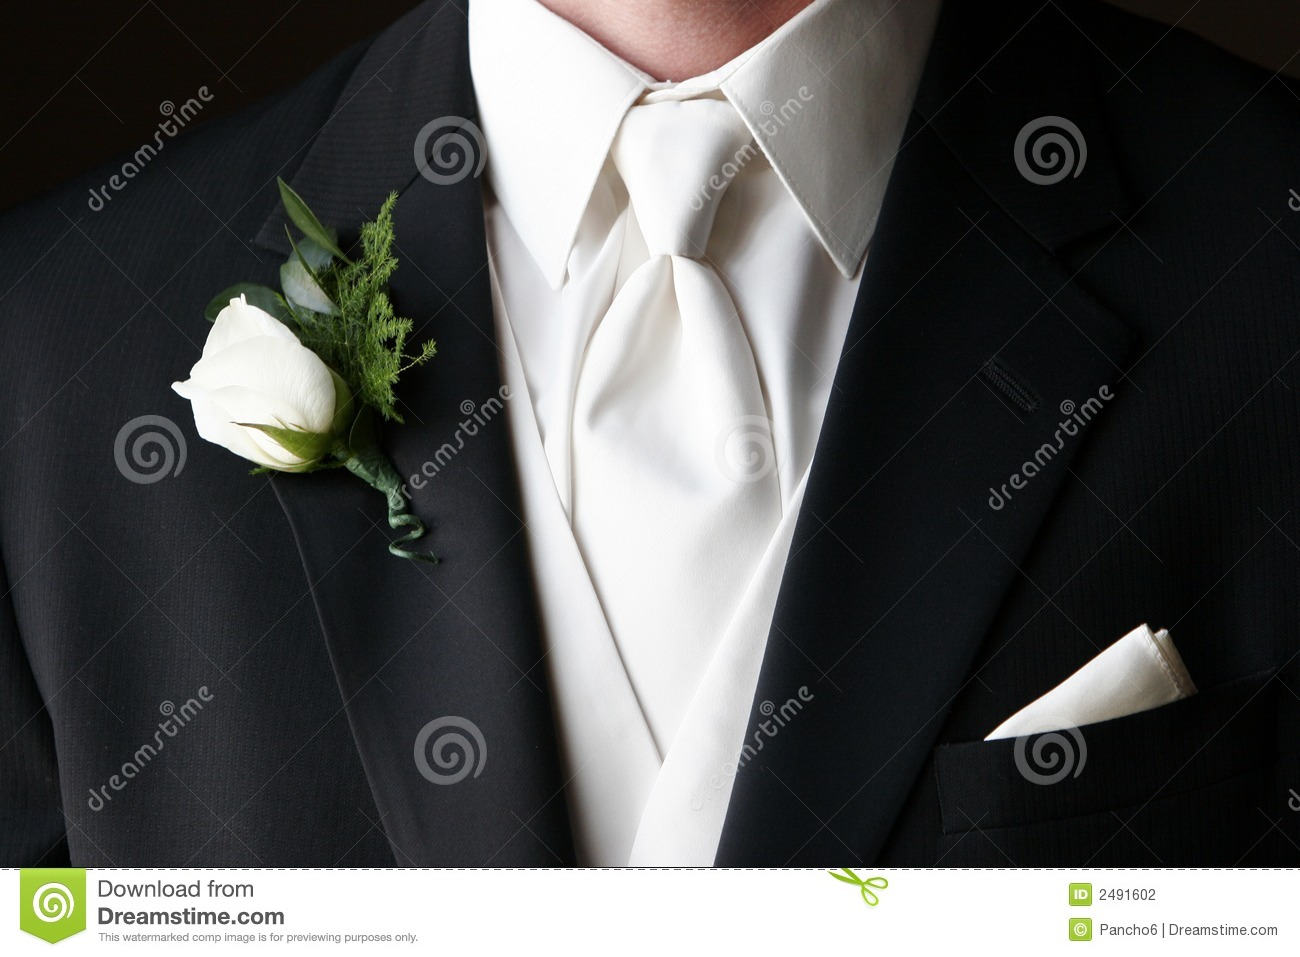 boutonniere de mariage photo stock image du agencement 2491602. Black Bedroom Furniture Sets. Home Design Ideas